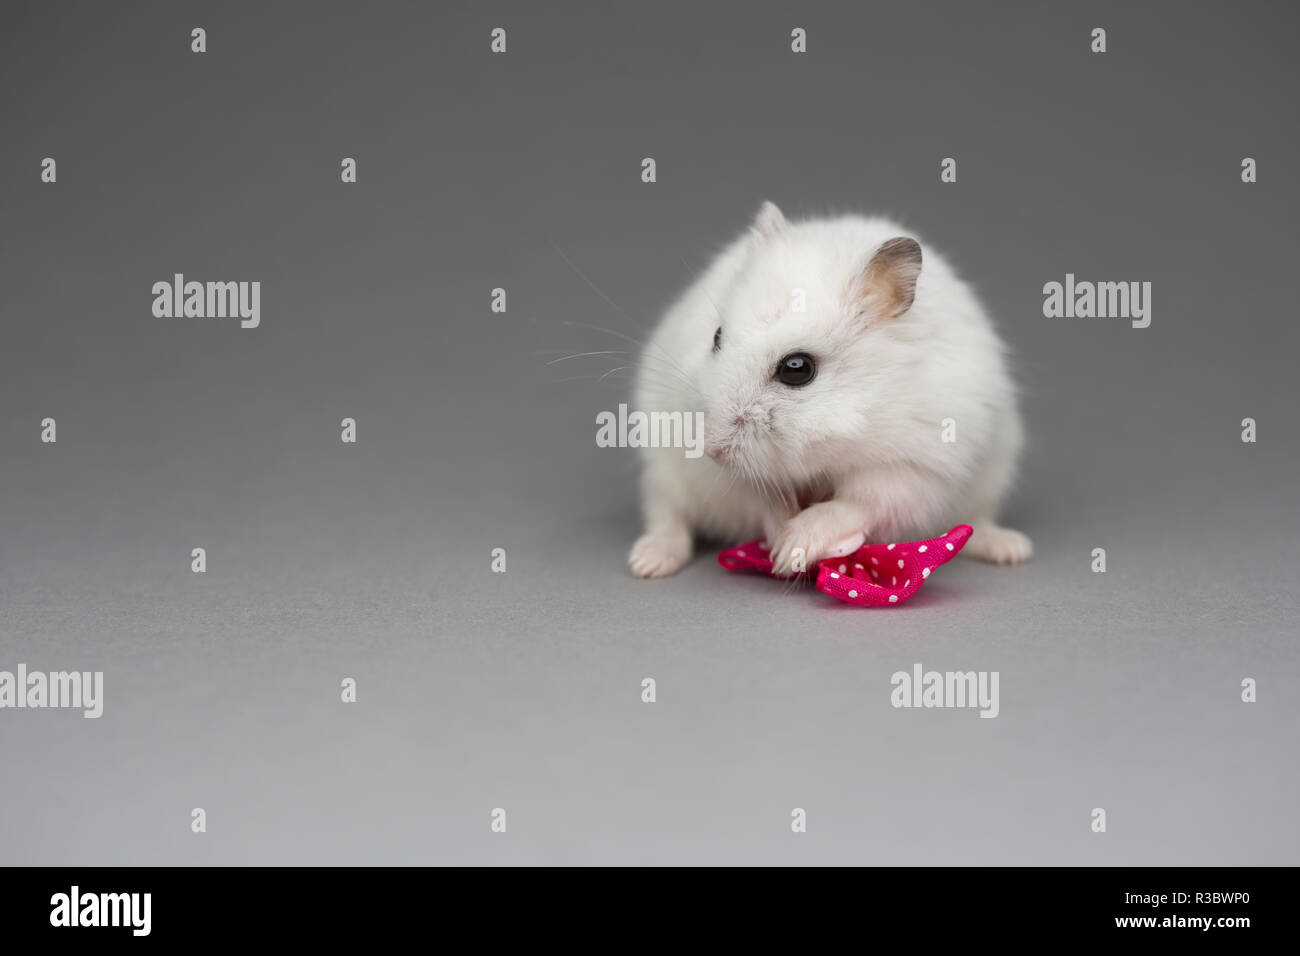 Cute hamster girl with pink bow on Valentines day on gray background - Stock Image